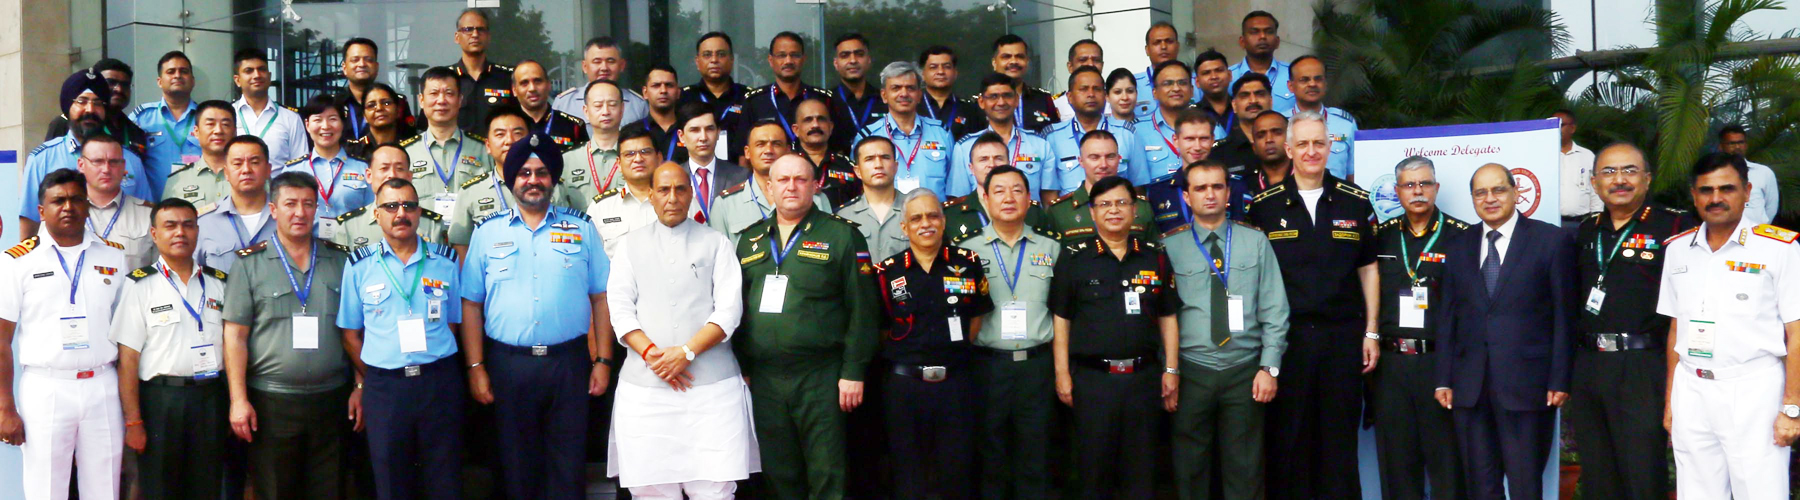 Raksha Mantri Shri Rajnath Singh in group photo with foreign delegates and senior defence officials at the 1st Military Medicine Conference of Shanghai Co-operation Organisation countries in New Delhi on September 12, 2019